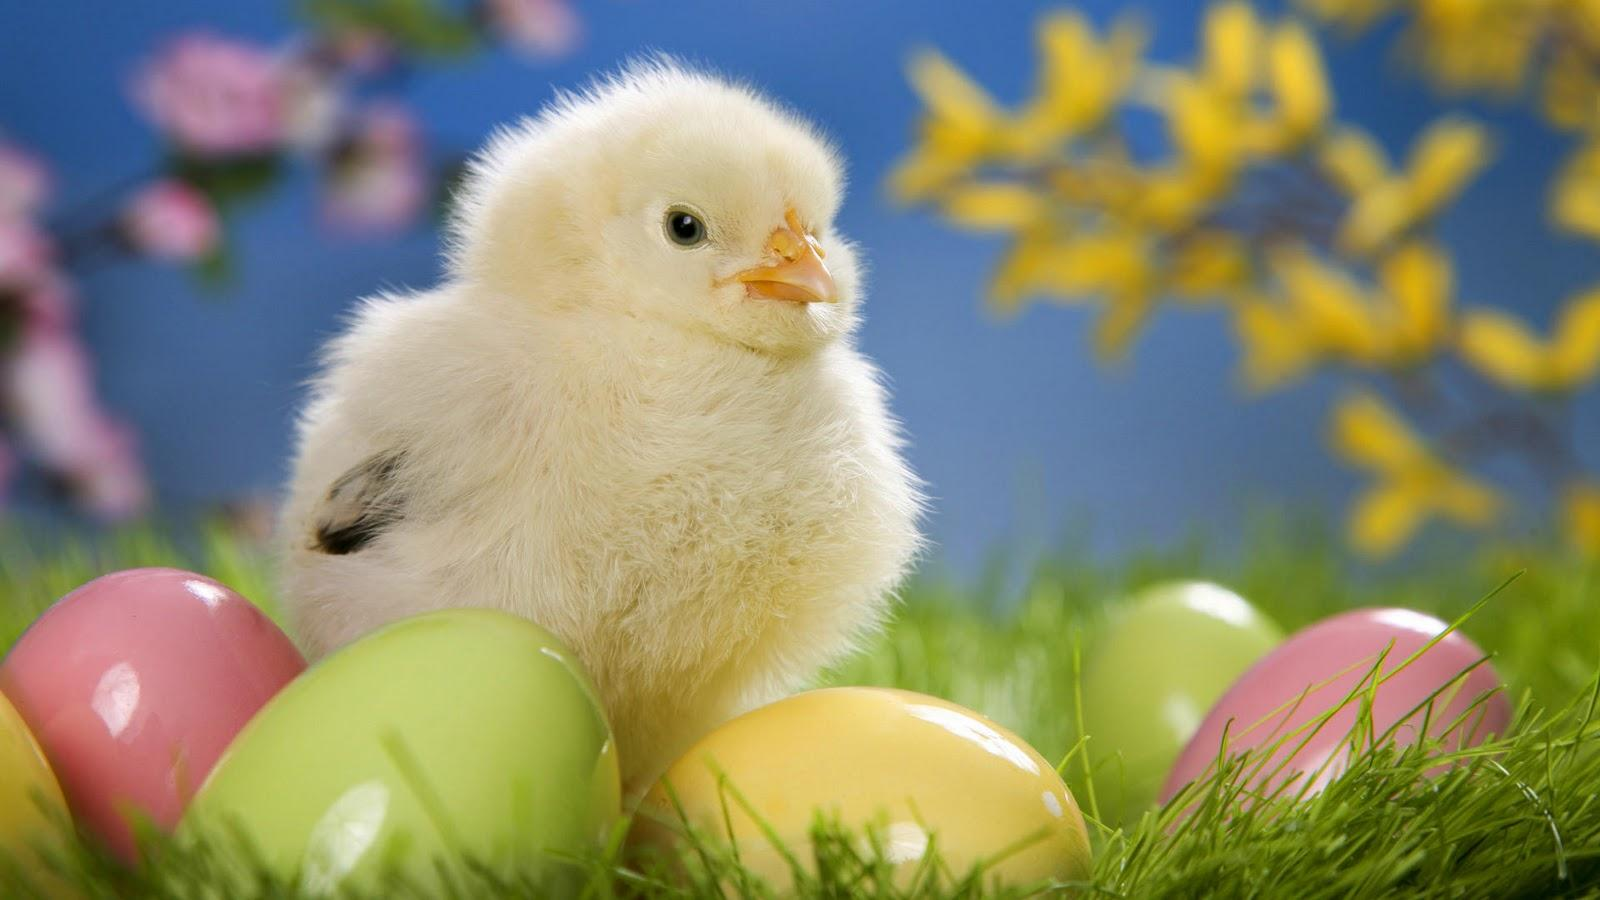 Cute Hen Chick with Colorful Eggs Wallpapers